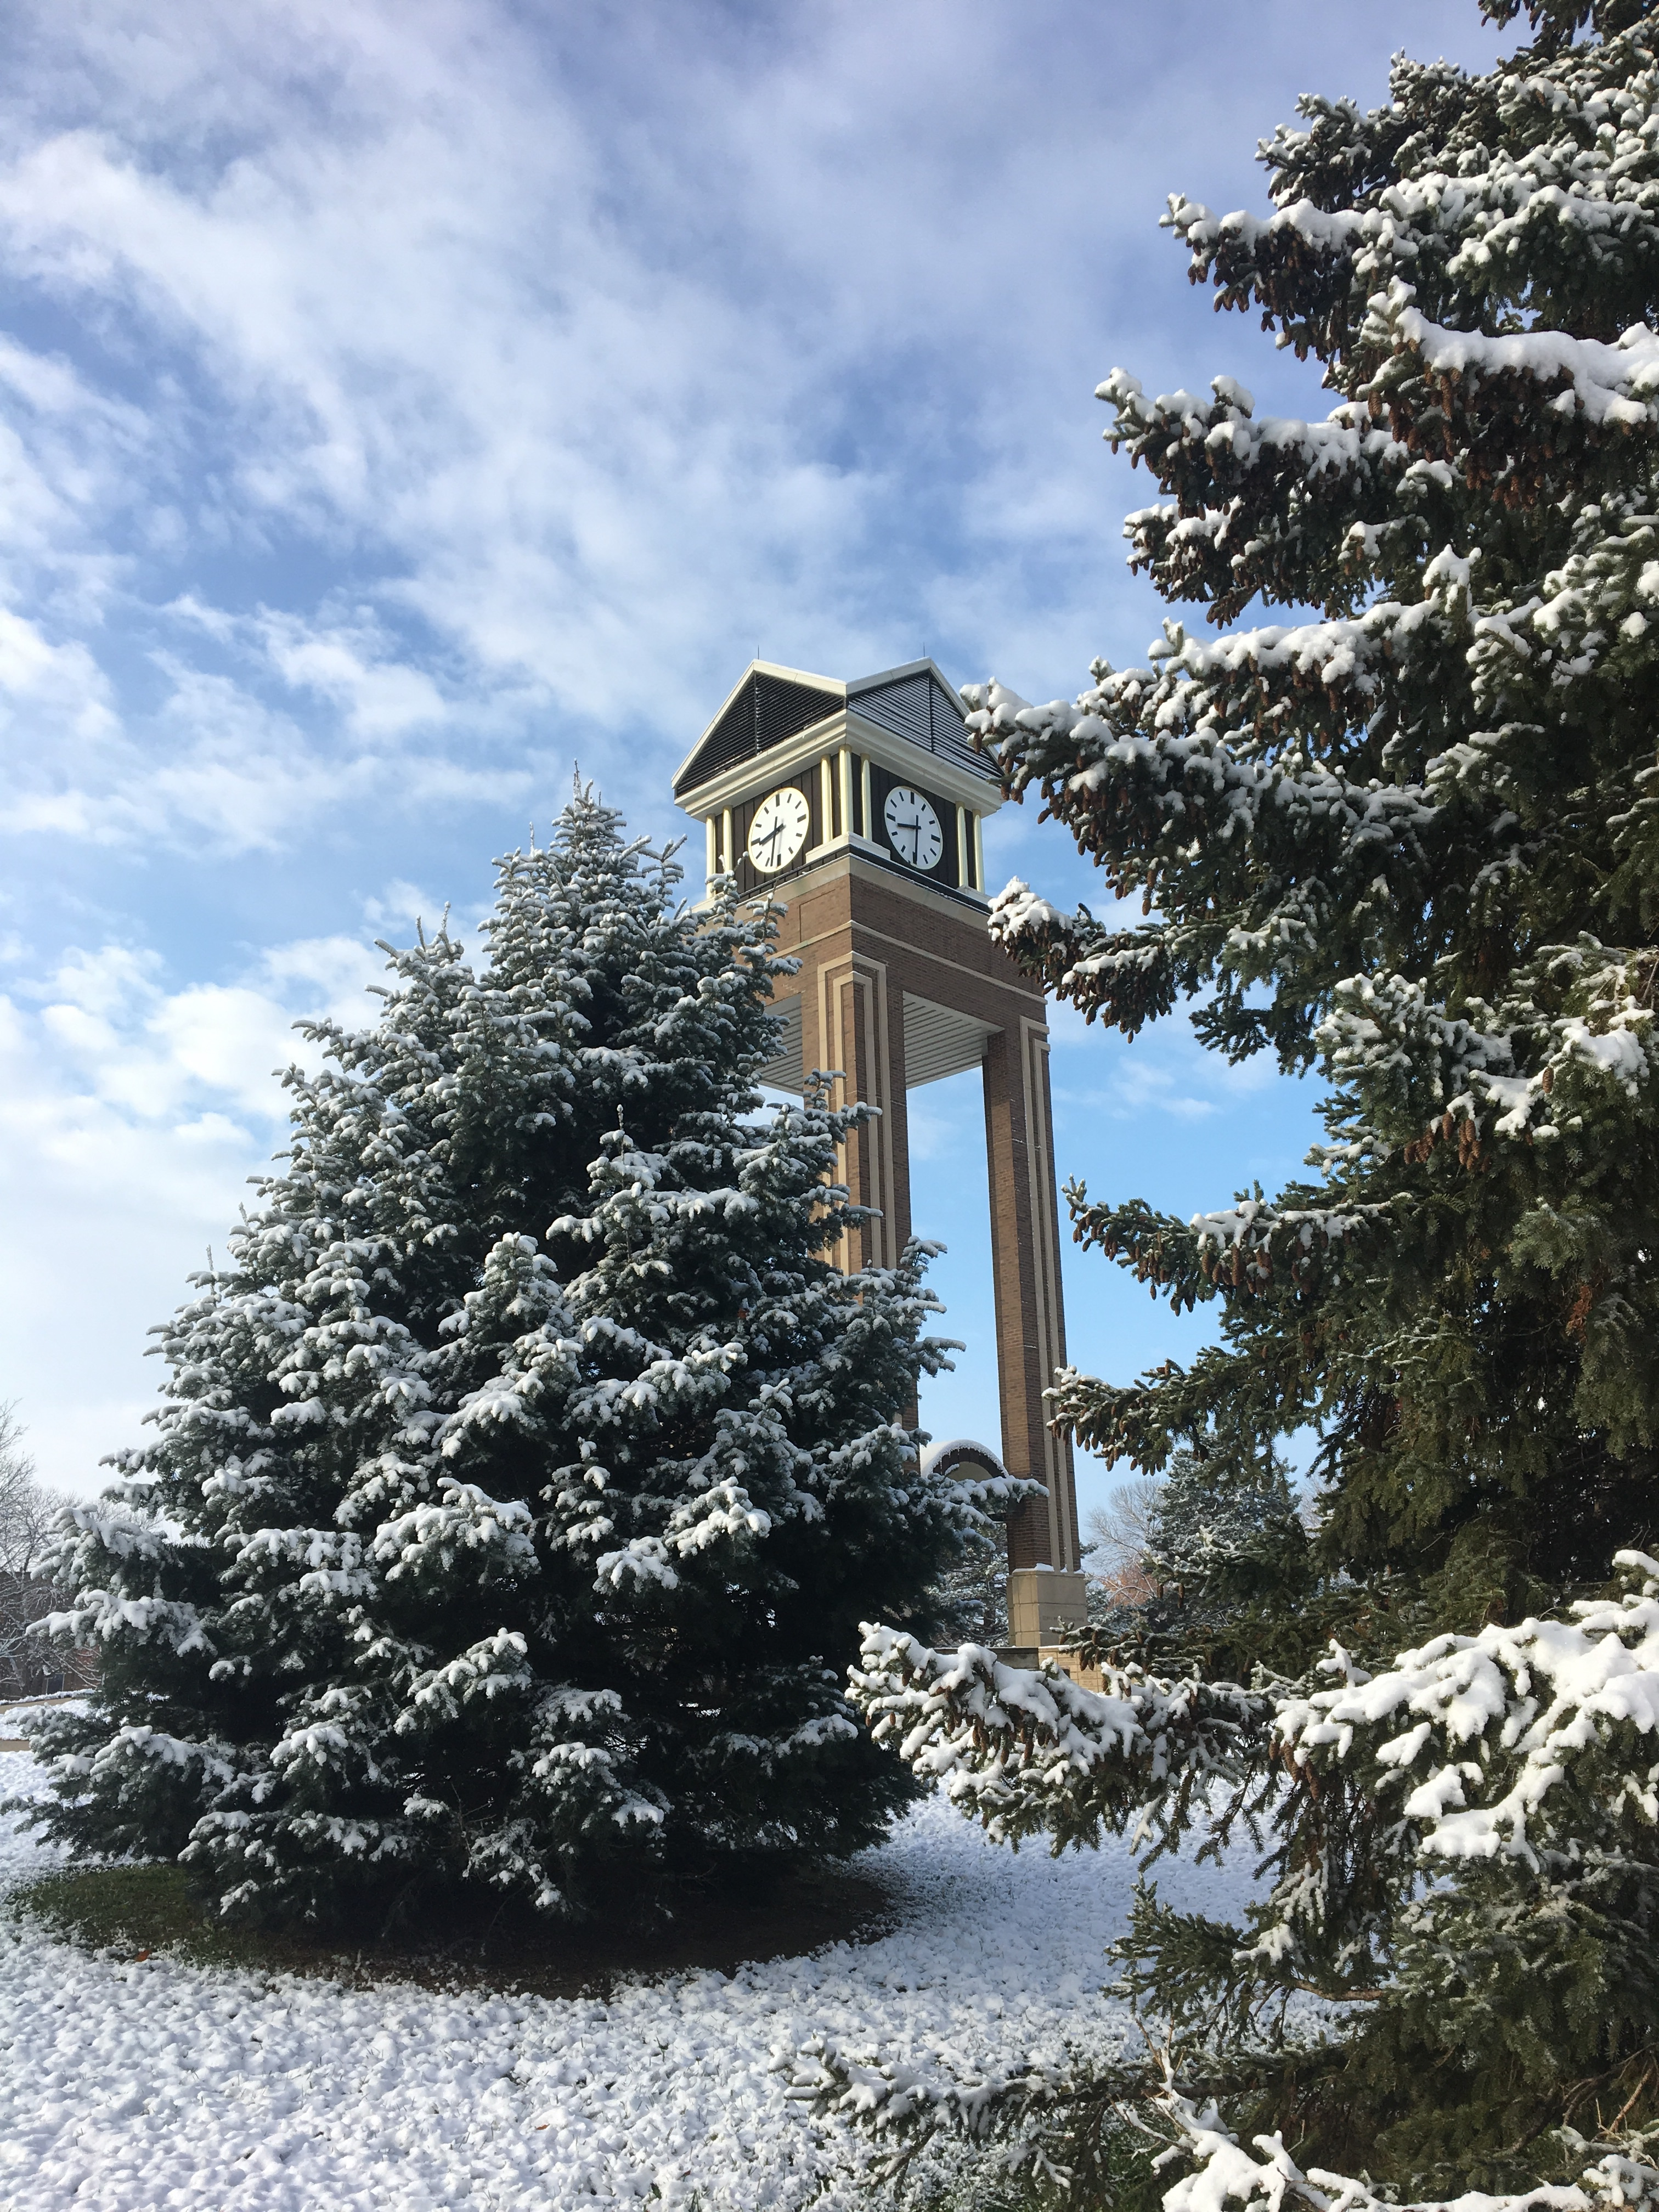 Snow-covered ground and pine trees with clock tower in the background